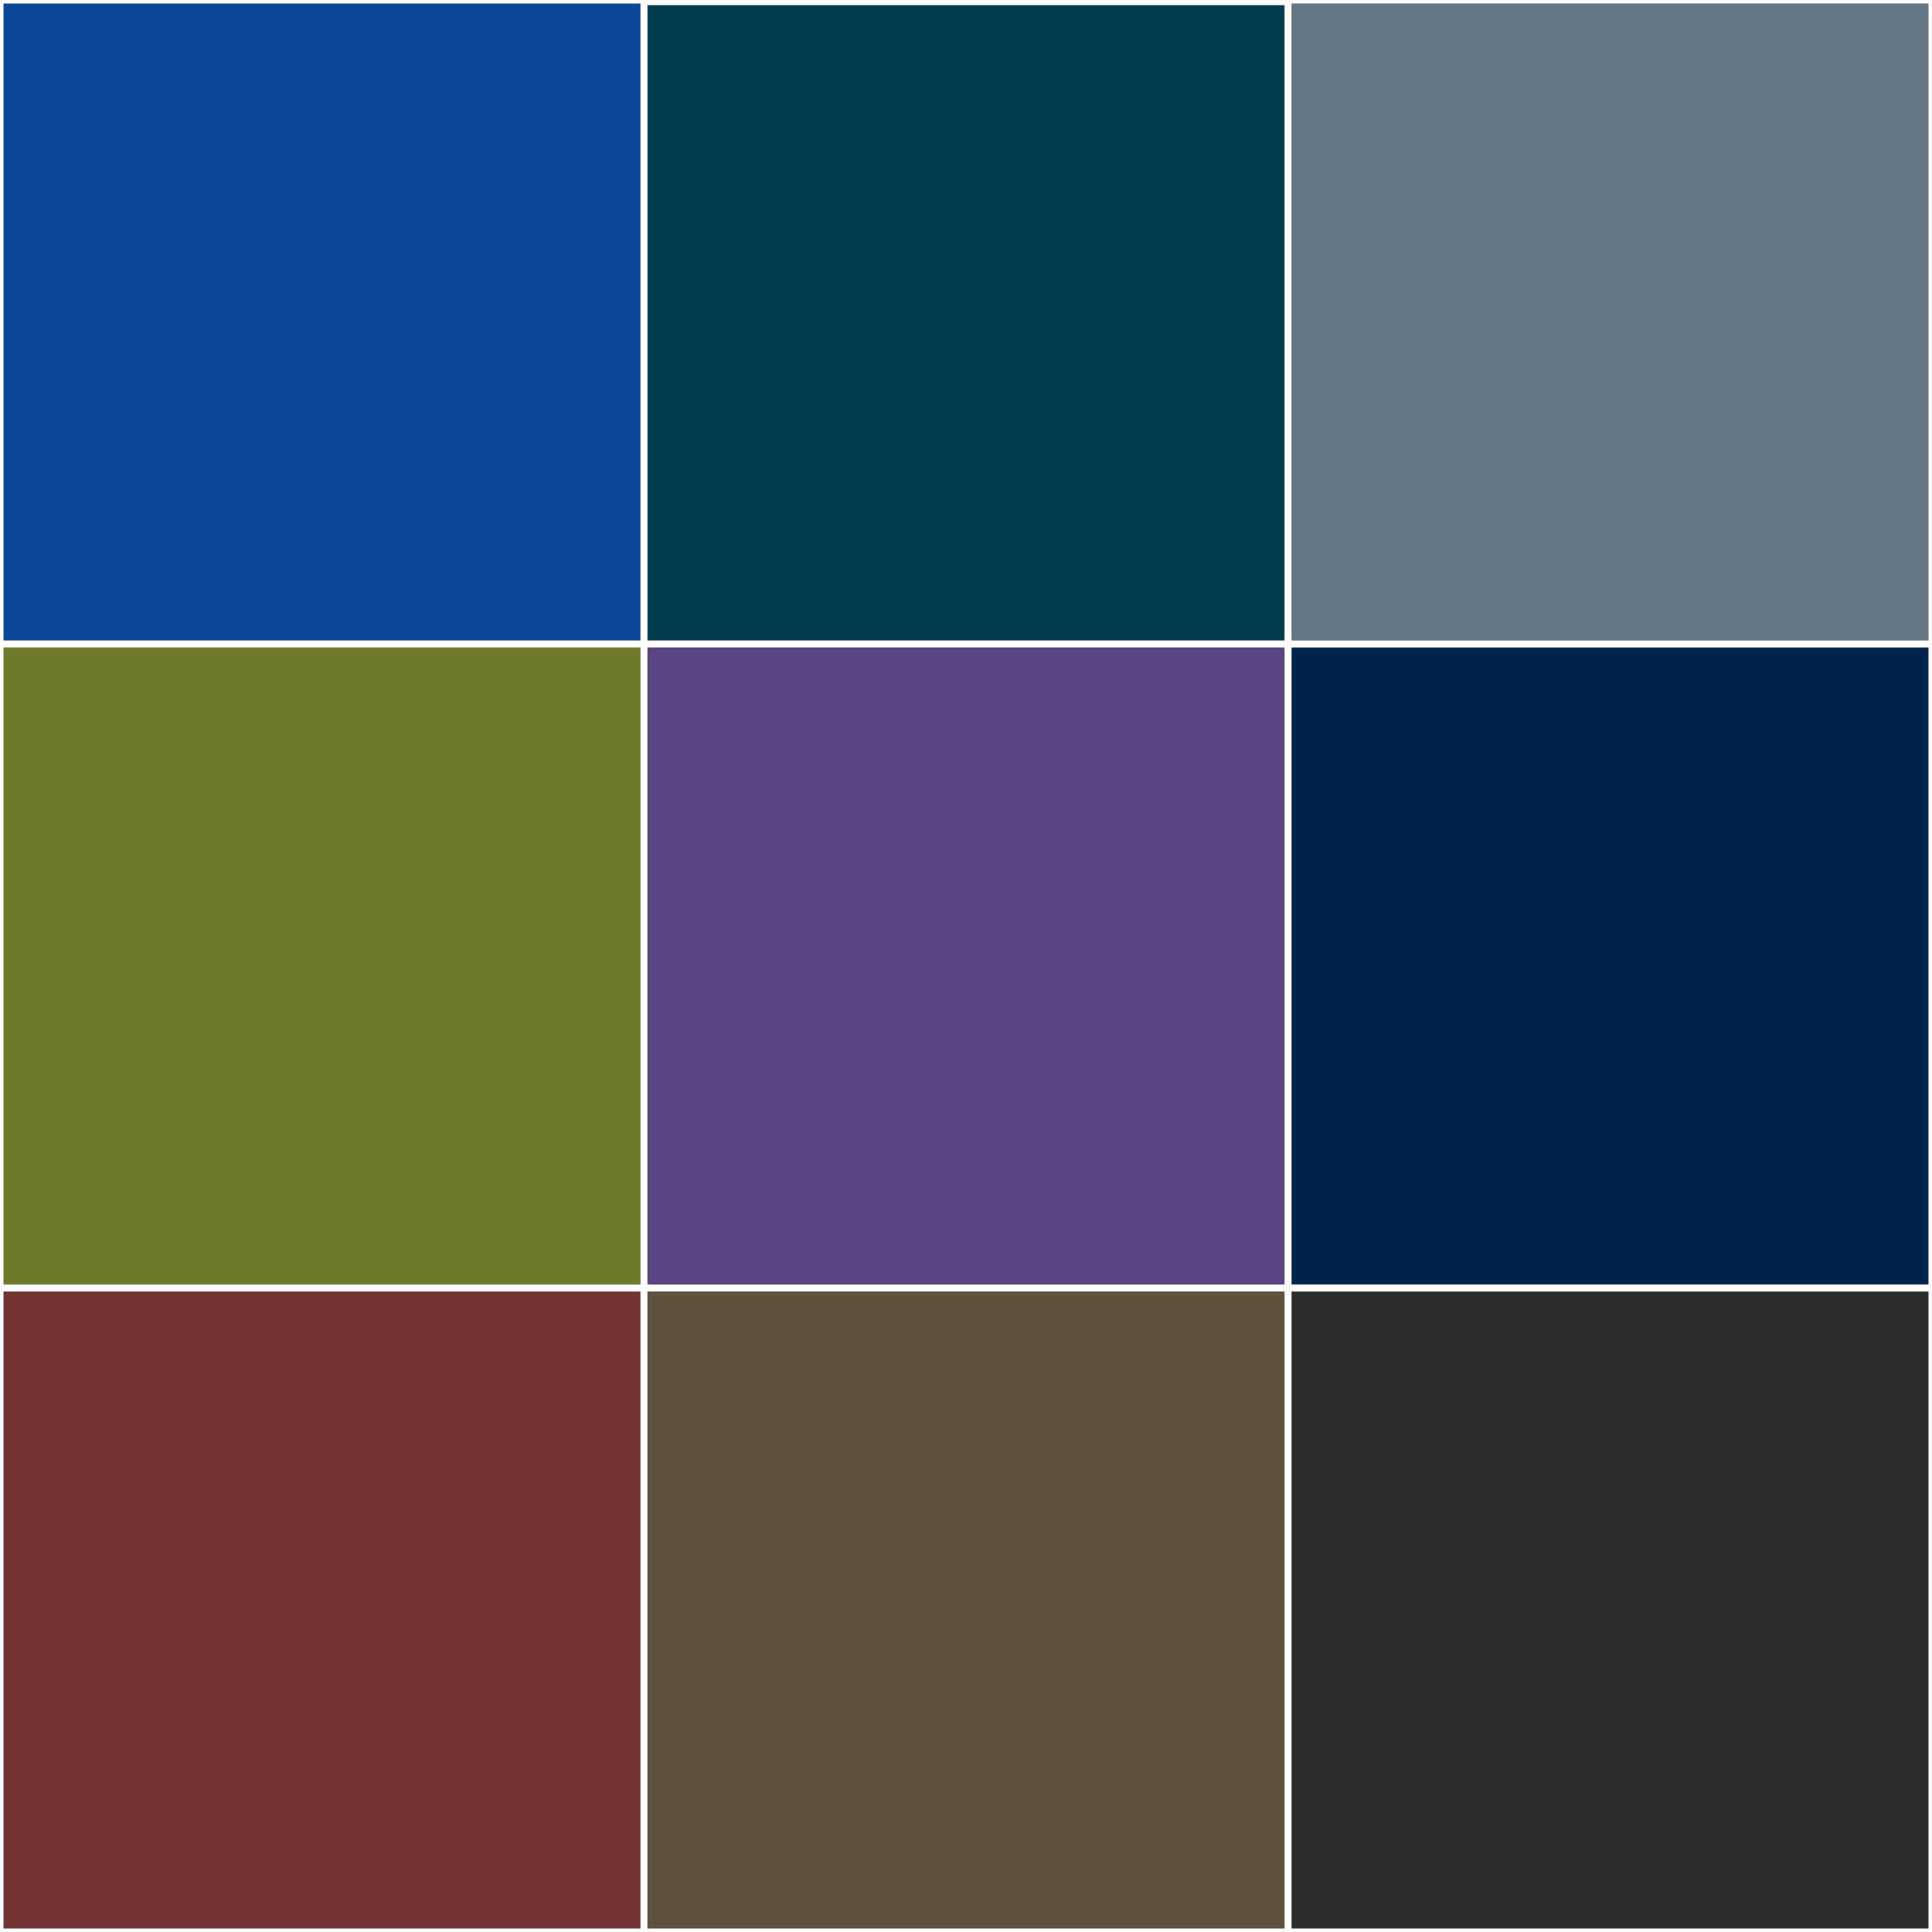 Ecolite Stock Colors (Note: These are stock colors only. Custom color matches available by request.)